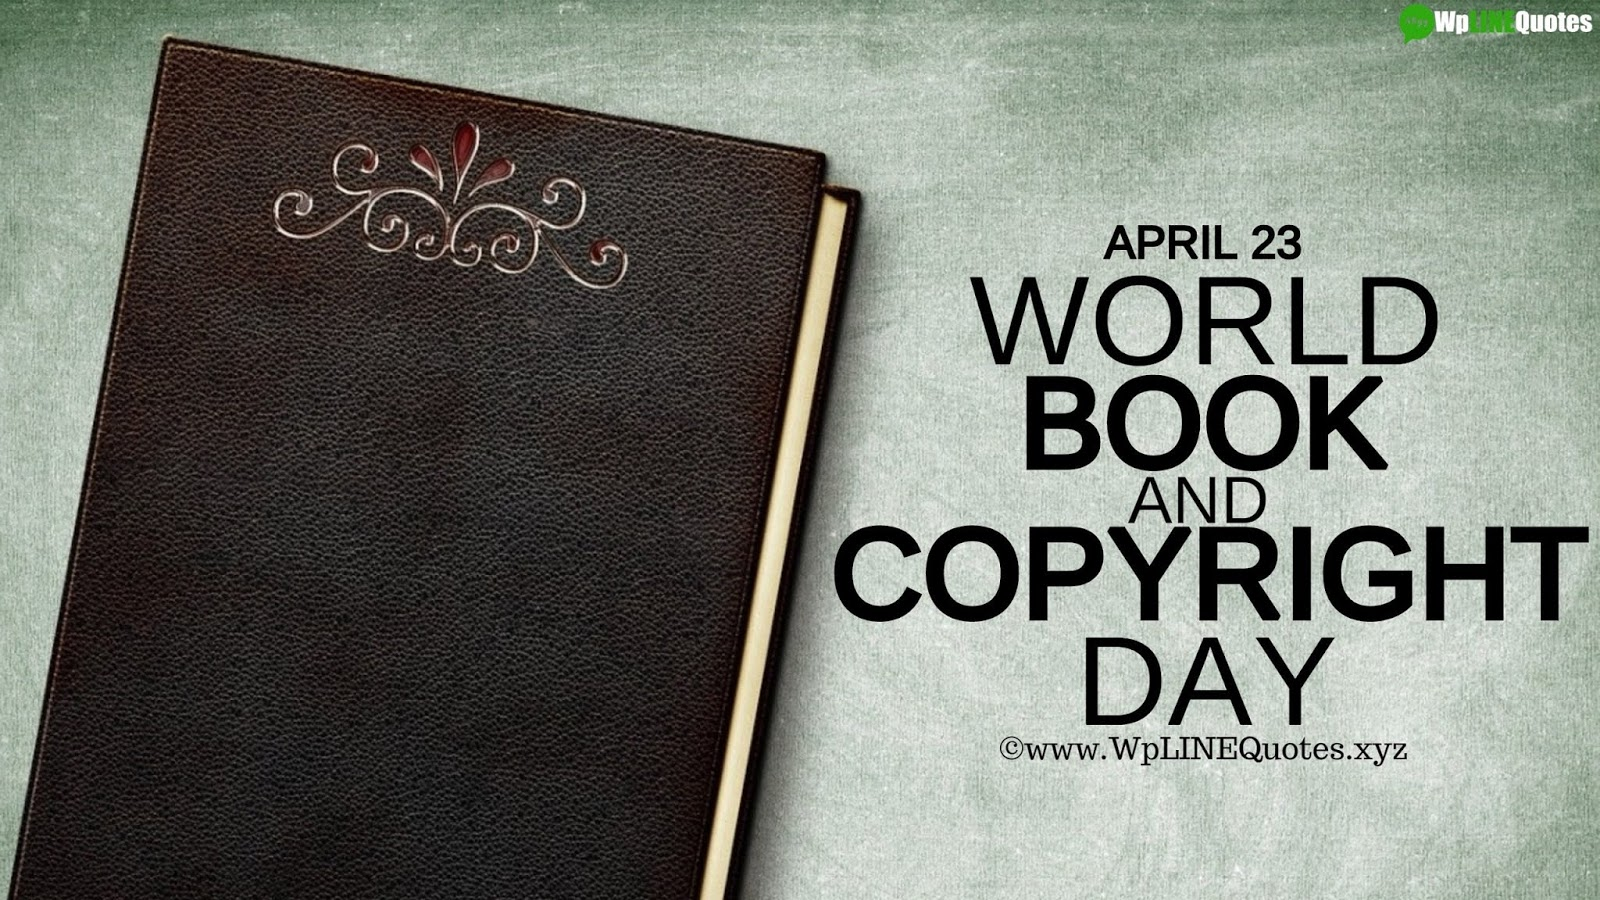 World Book Day Quotes, Wishes, Message, Greetings, History, Facts, Images, Photos, Poster, Pictures